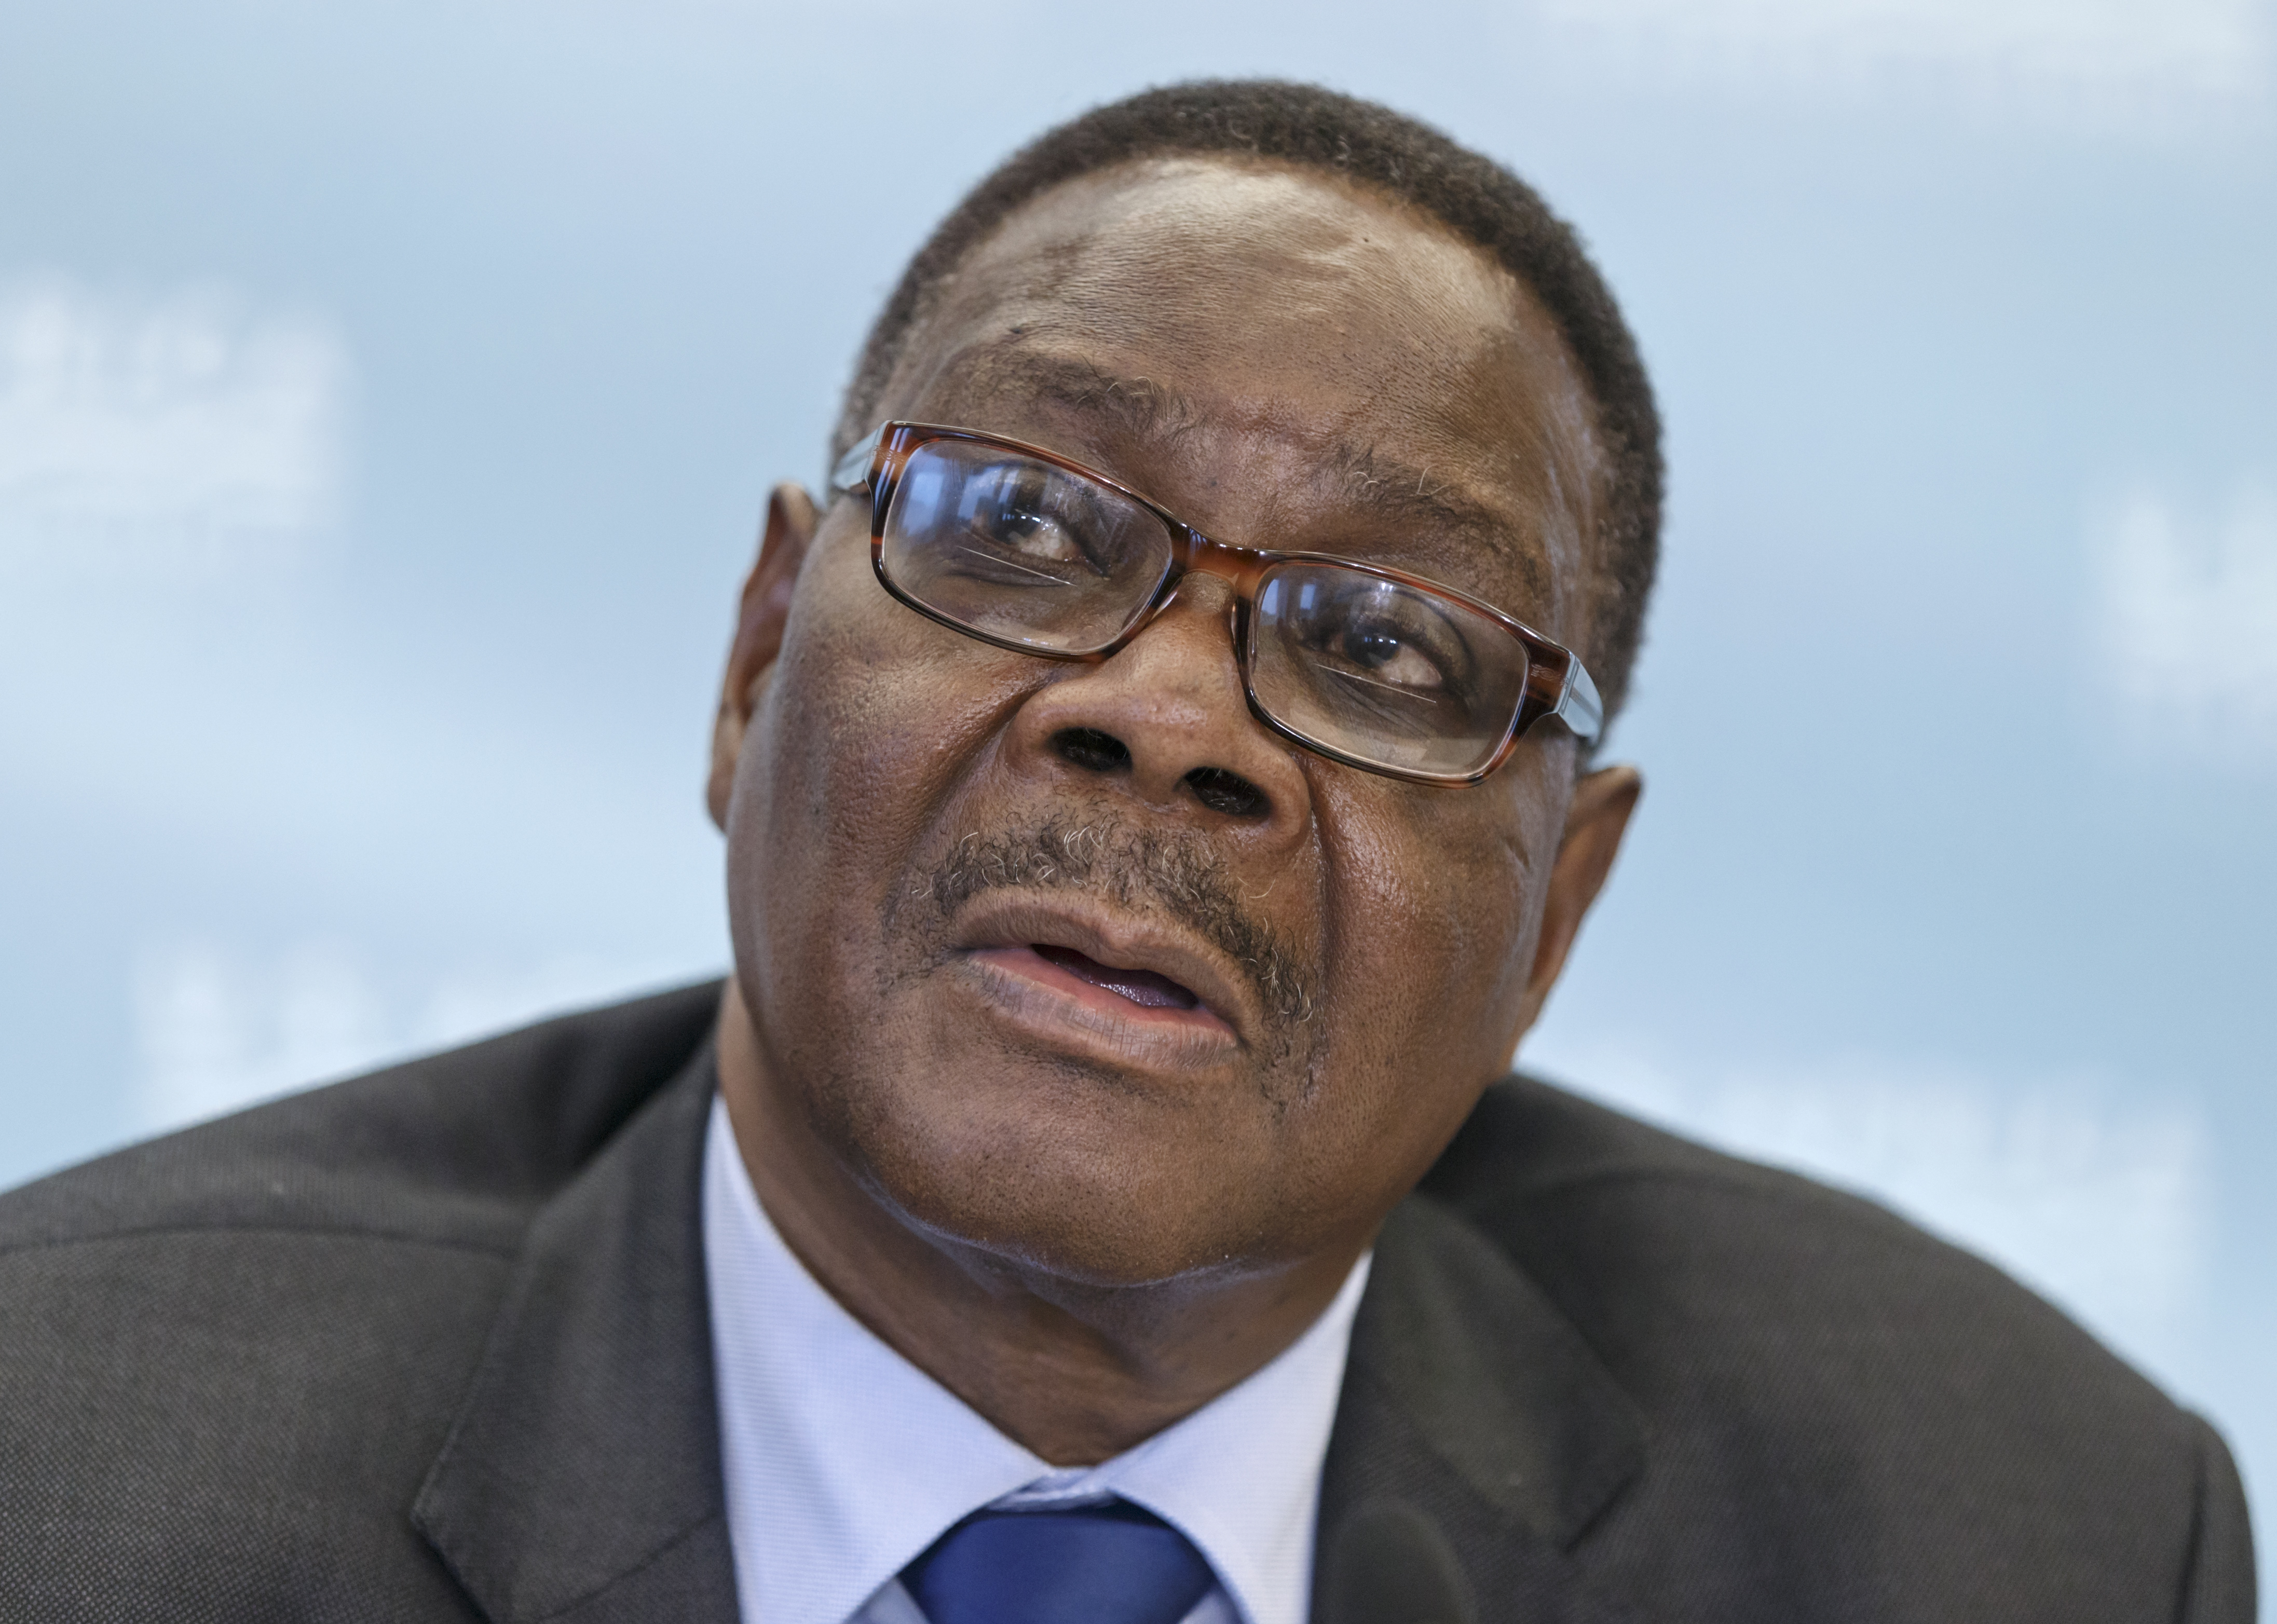 Malawi President Restricts Cabinet Ministers' Travel | Voice of